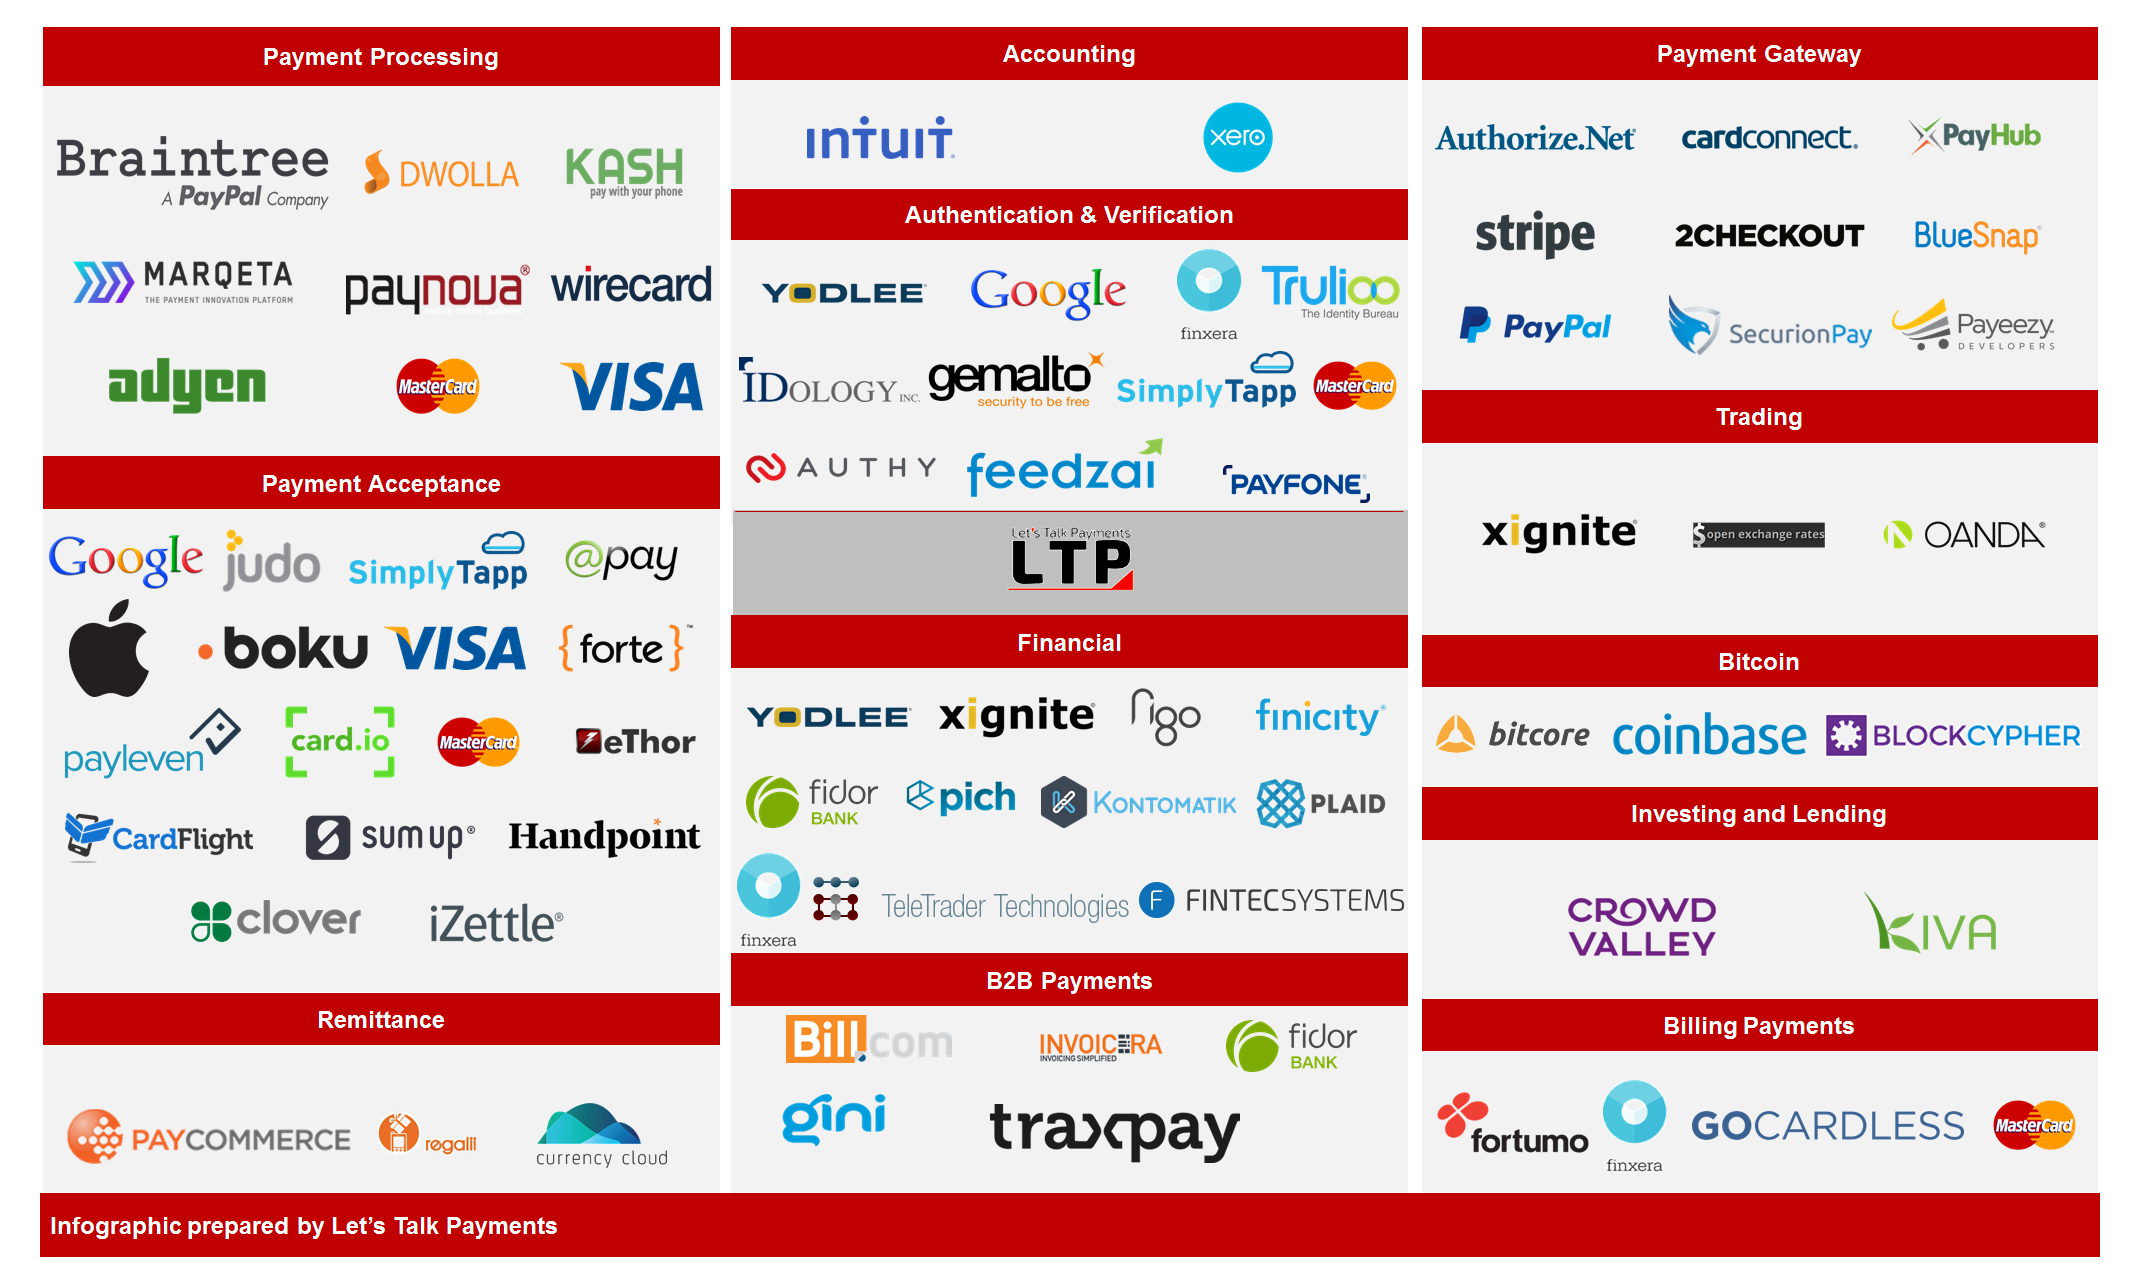 63 Insanely Useful APIs Across 12 Segments to Supercharge Your Product